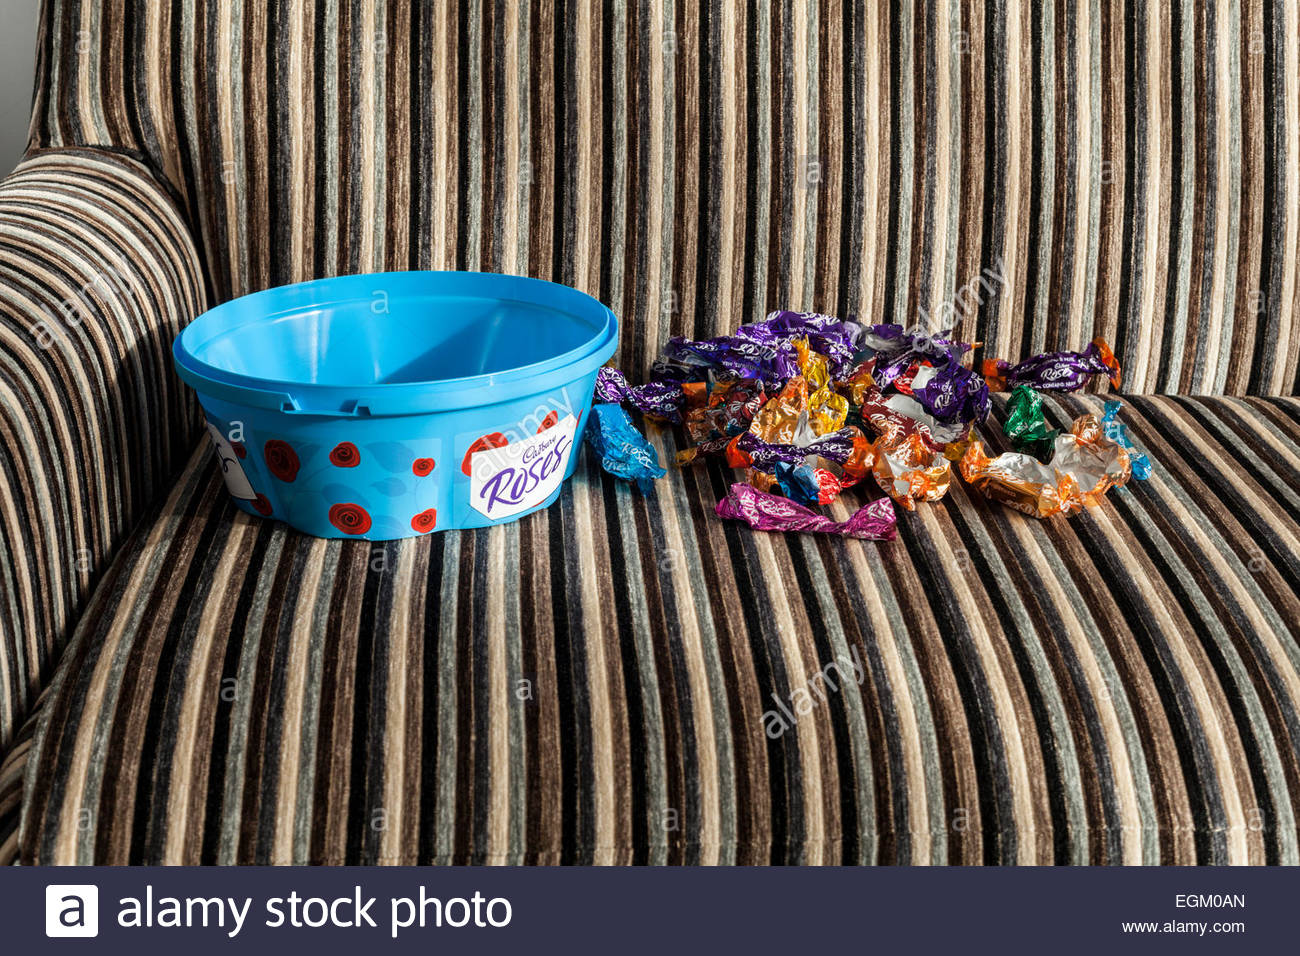 An empty tub of chocolates and discarded wrappers - Stock Image